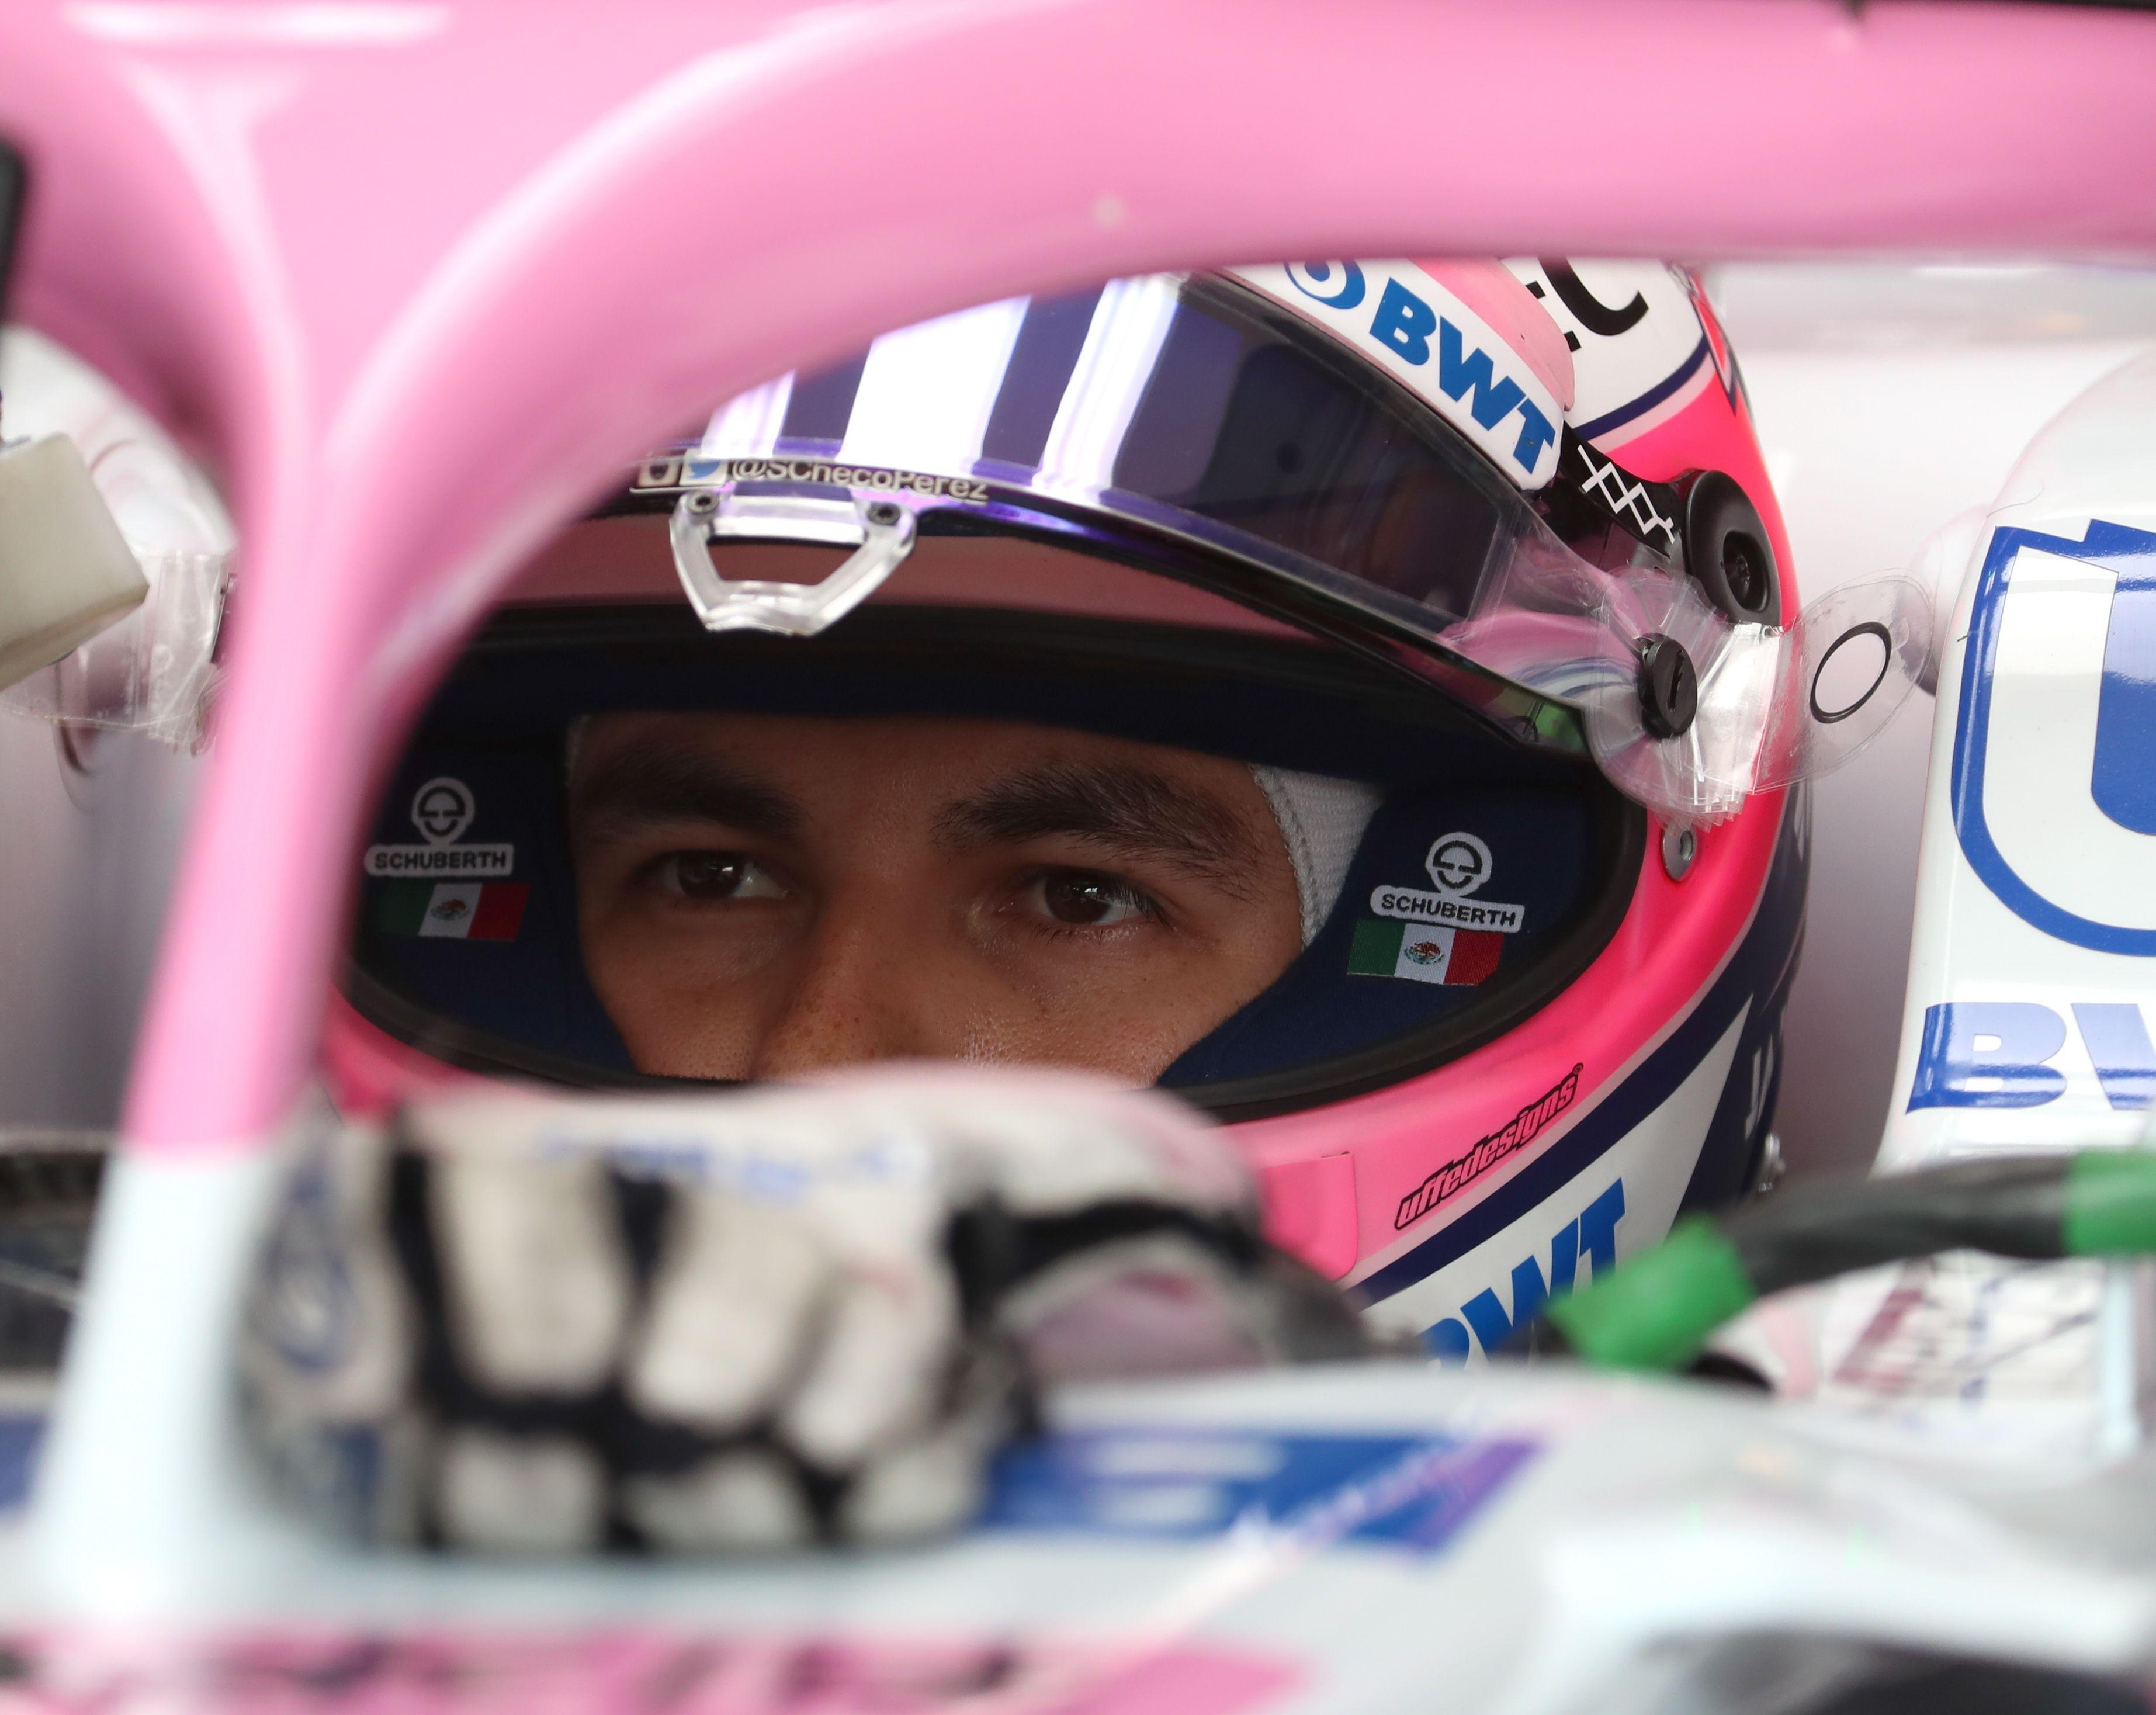 Sergio Perez instigated court action against Force India